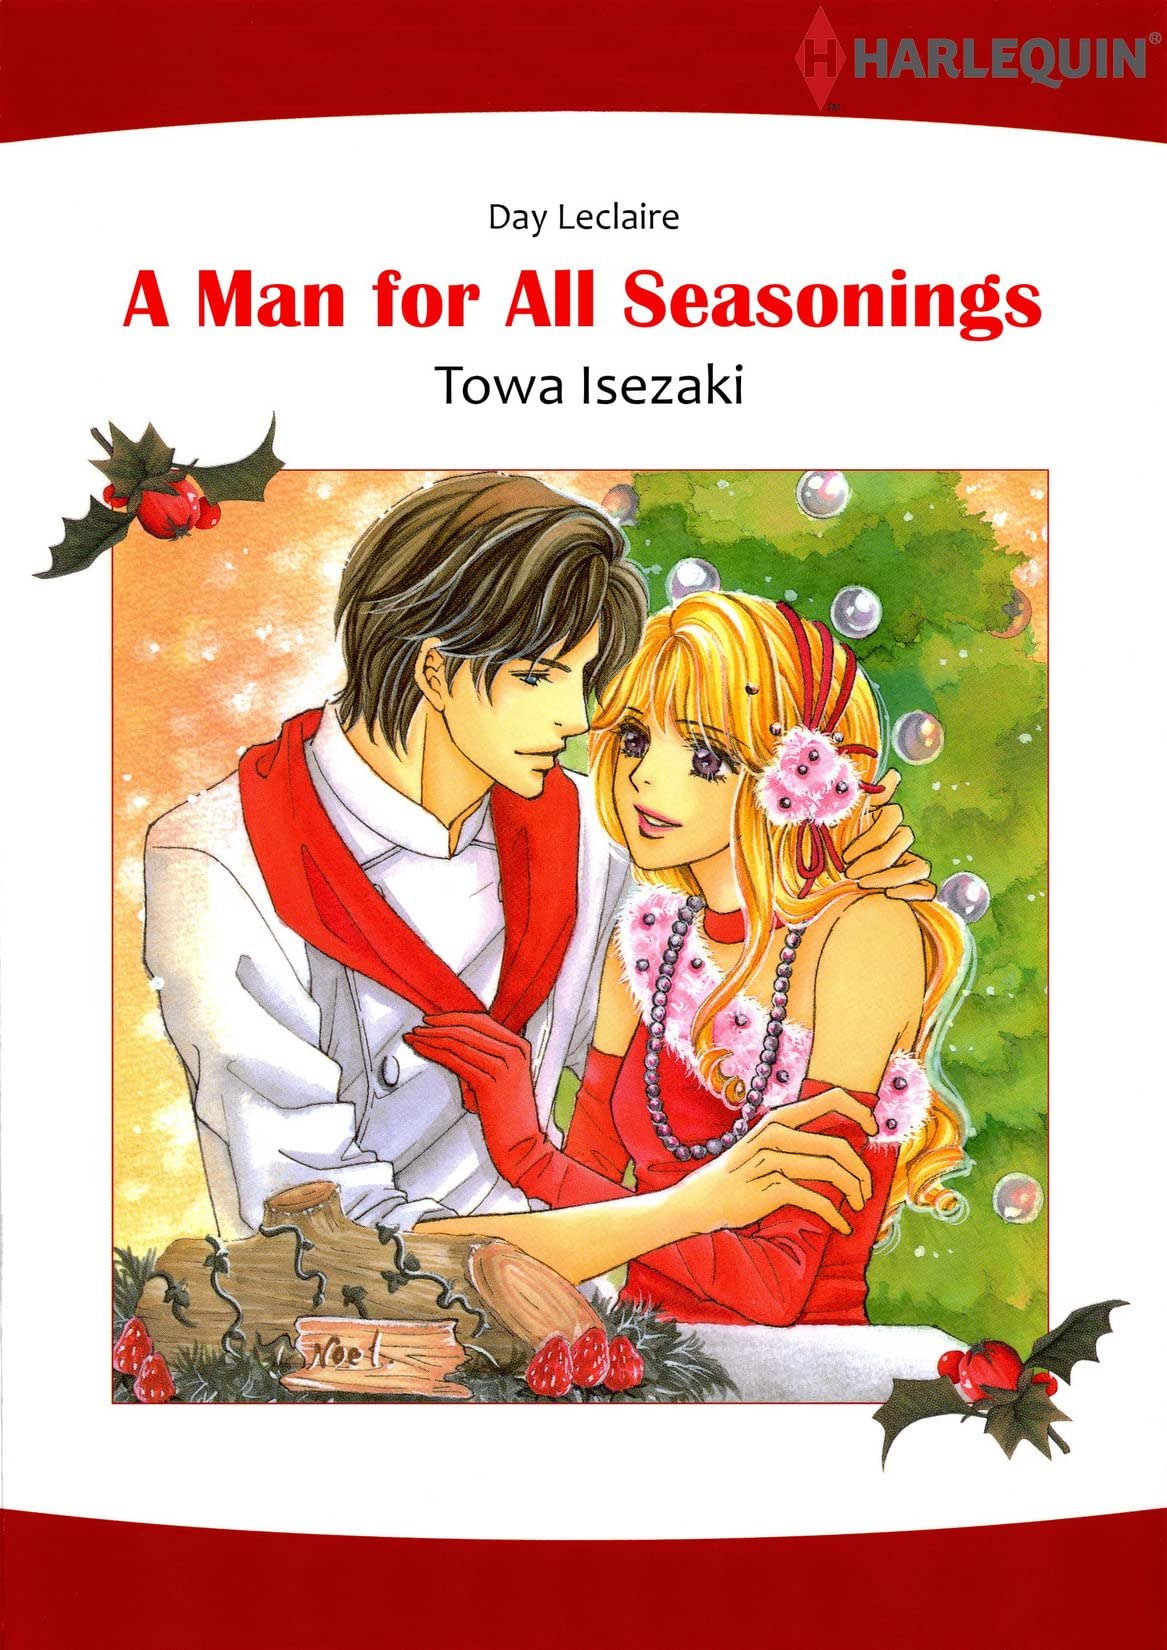 A Man For All Seasonings